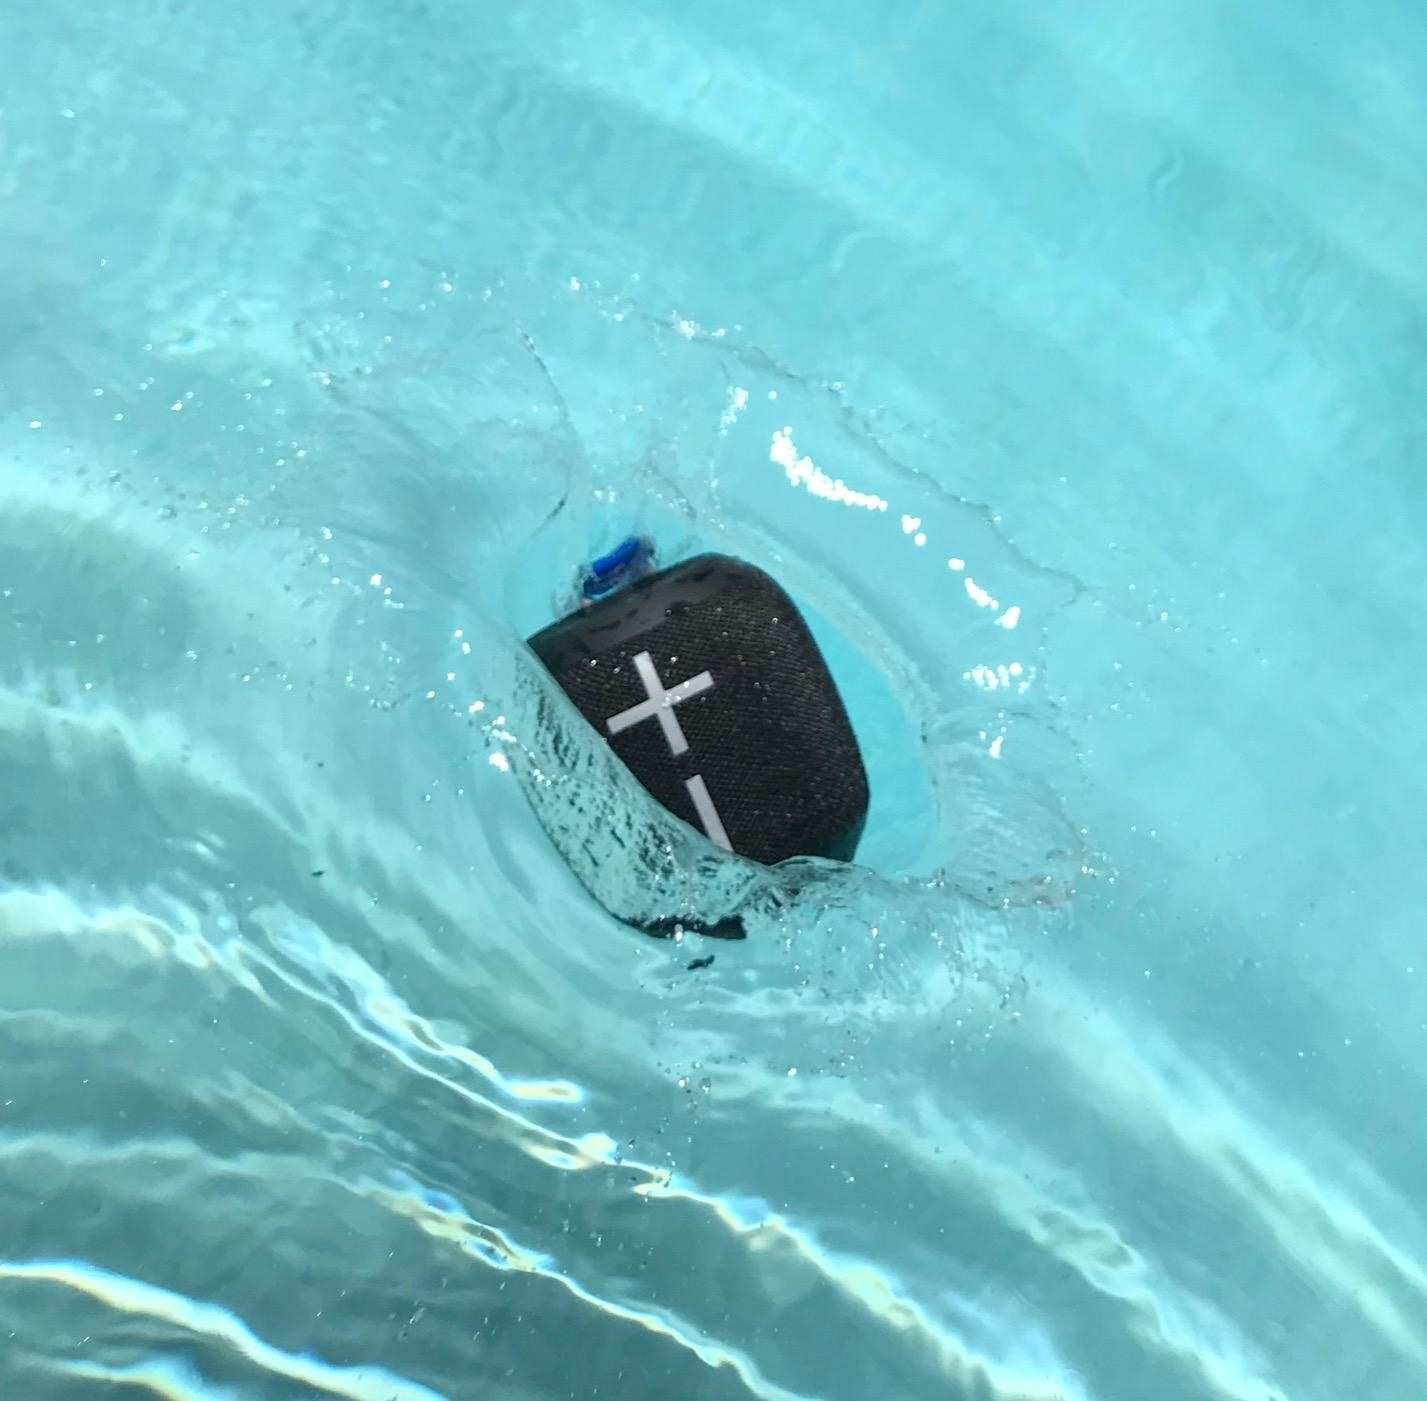 A black speaker floats in a reviewer's pool